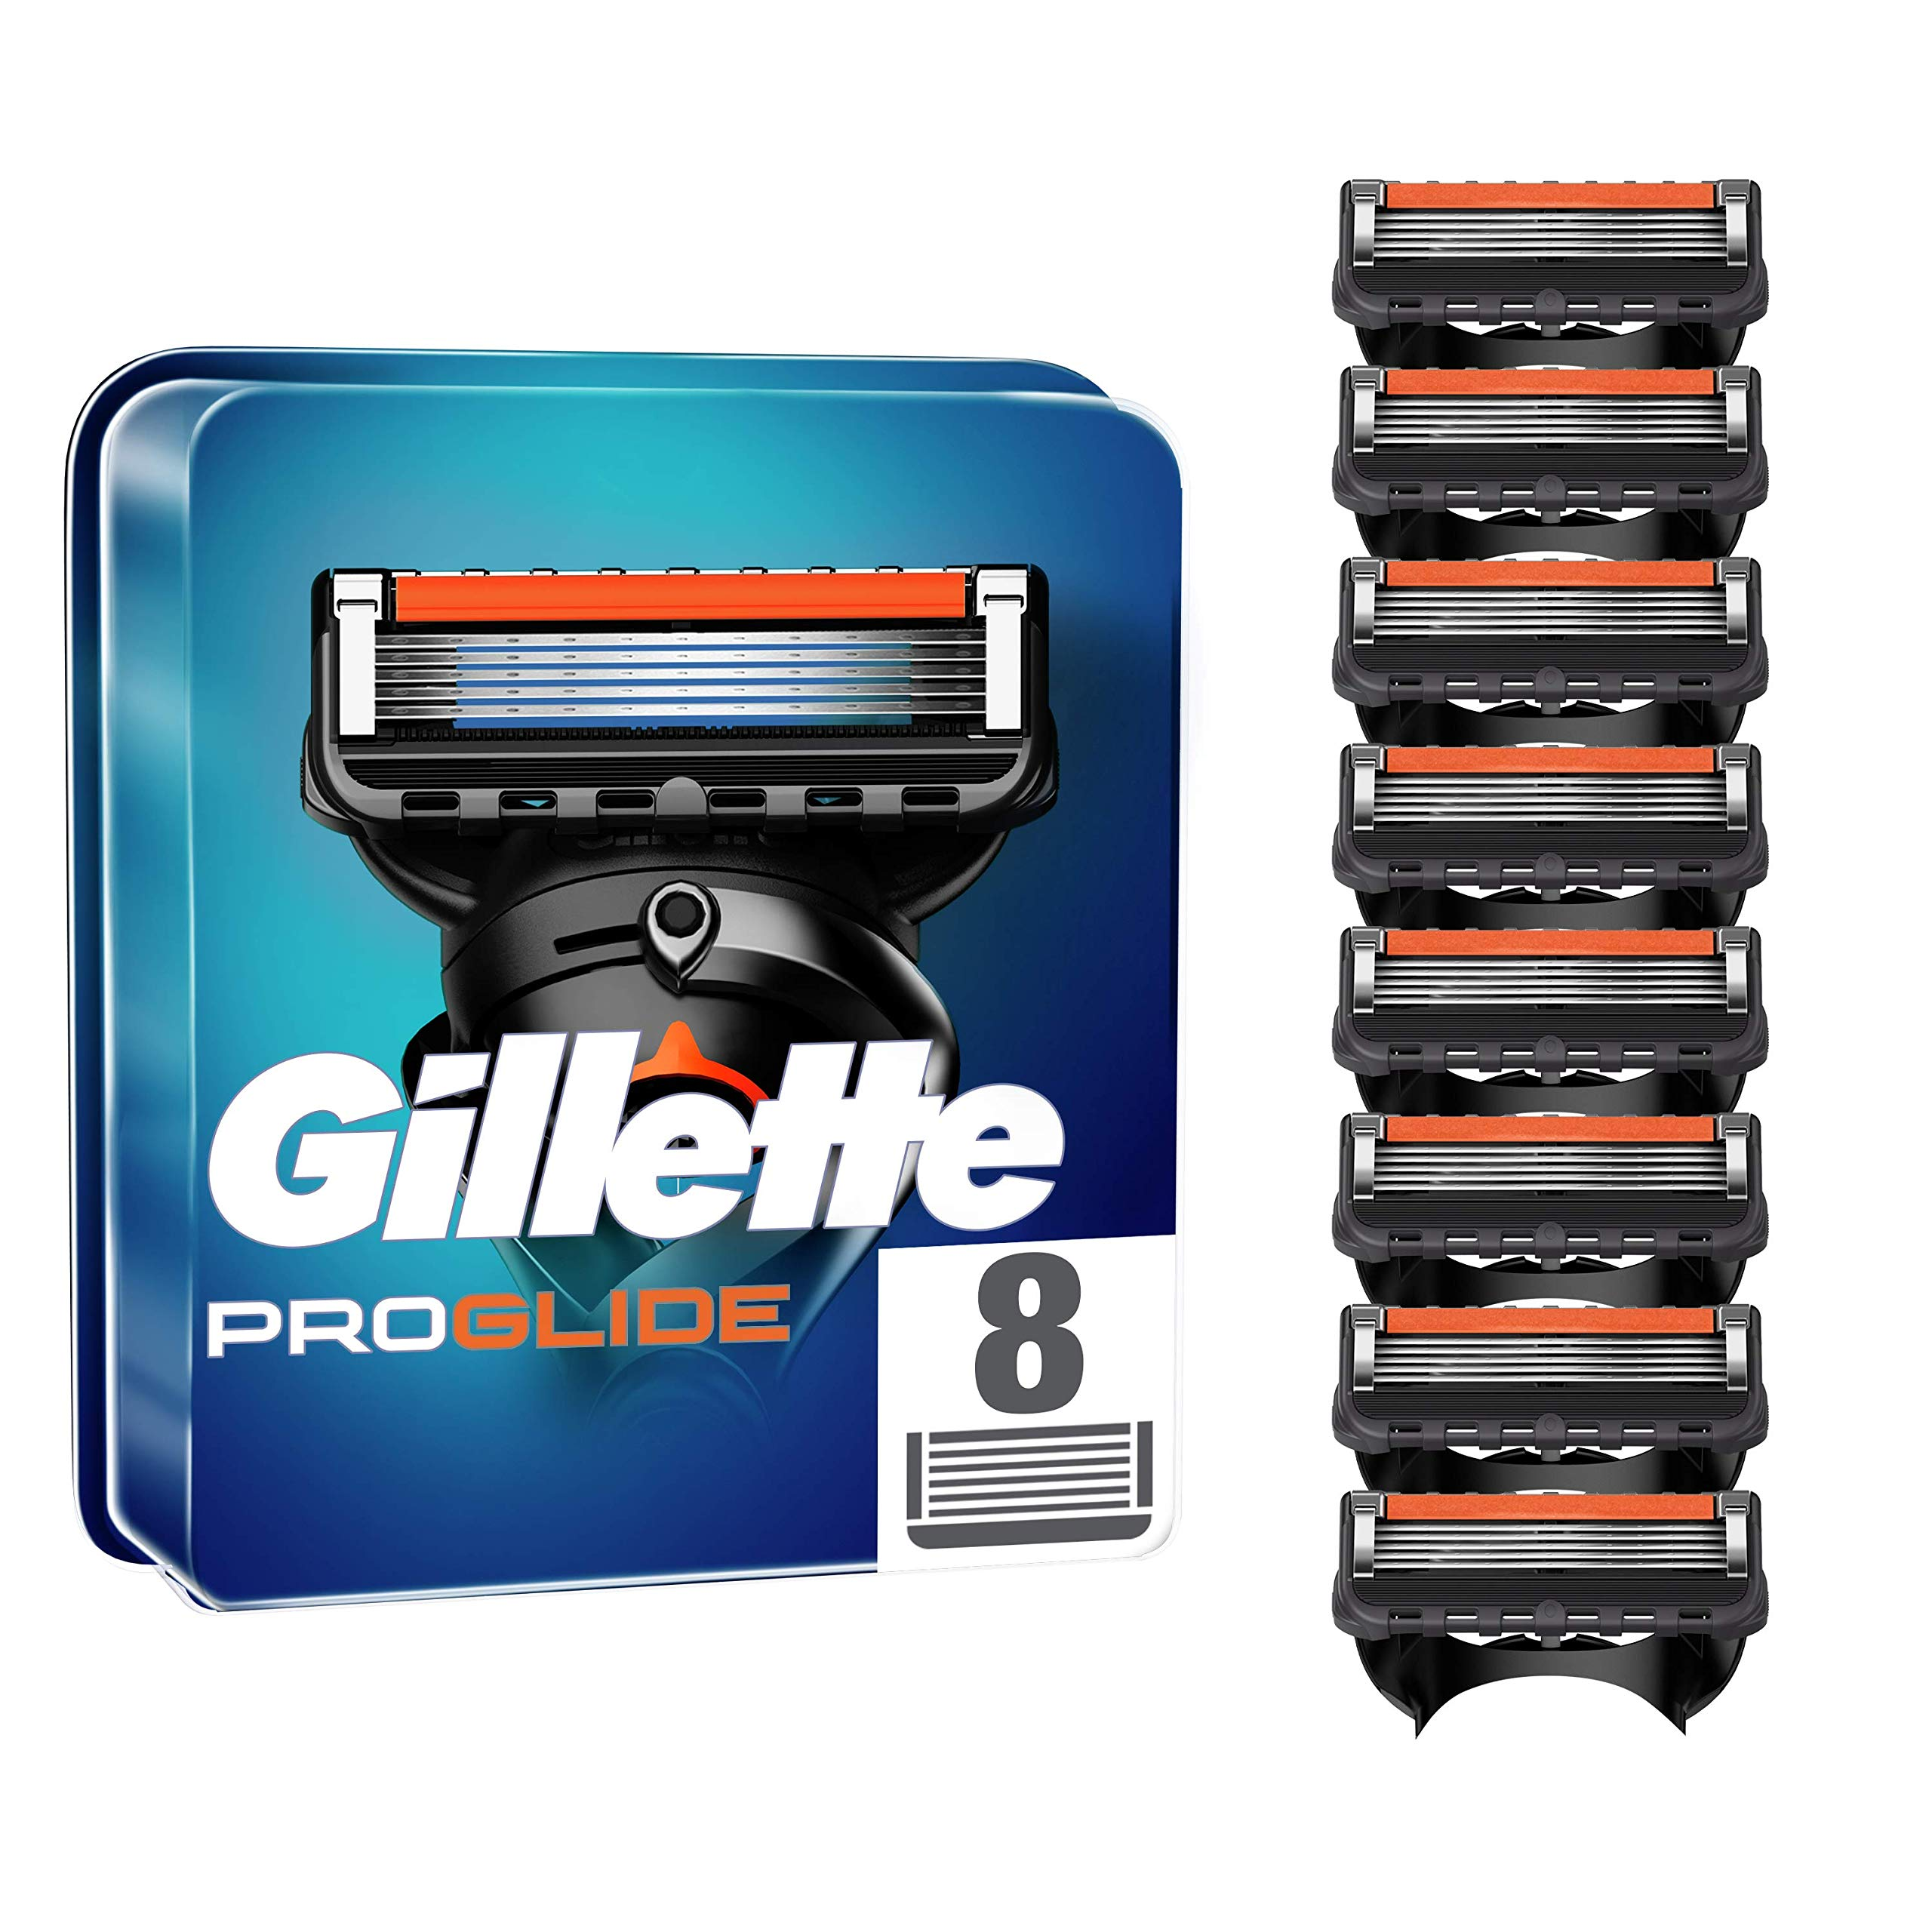 Gillette ProGlide Razor Blades for Men, Pack of 8 Refill Blades (Packaging May Vary)